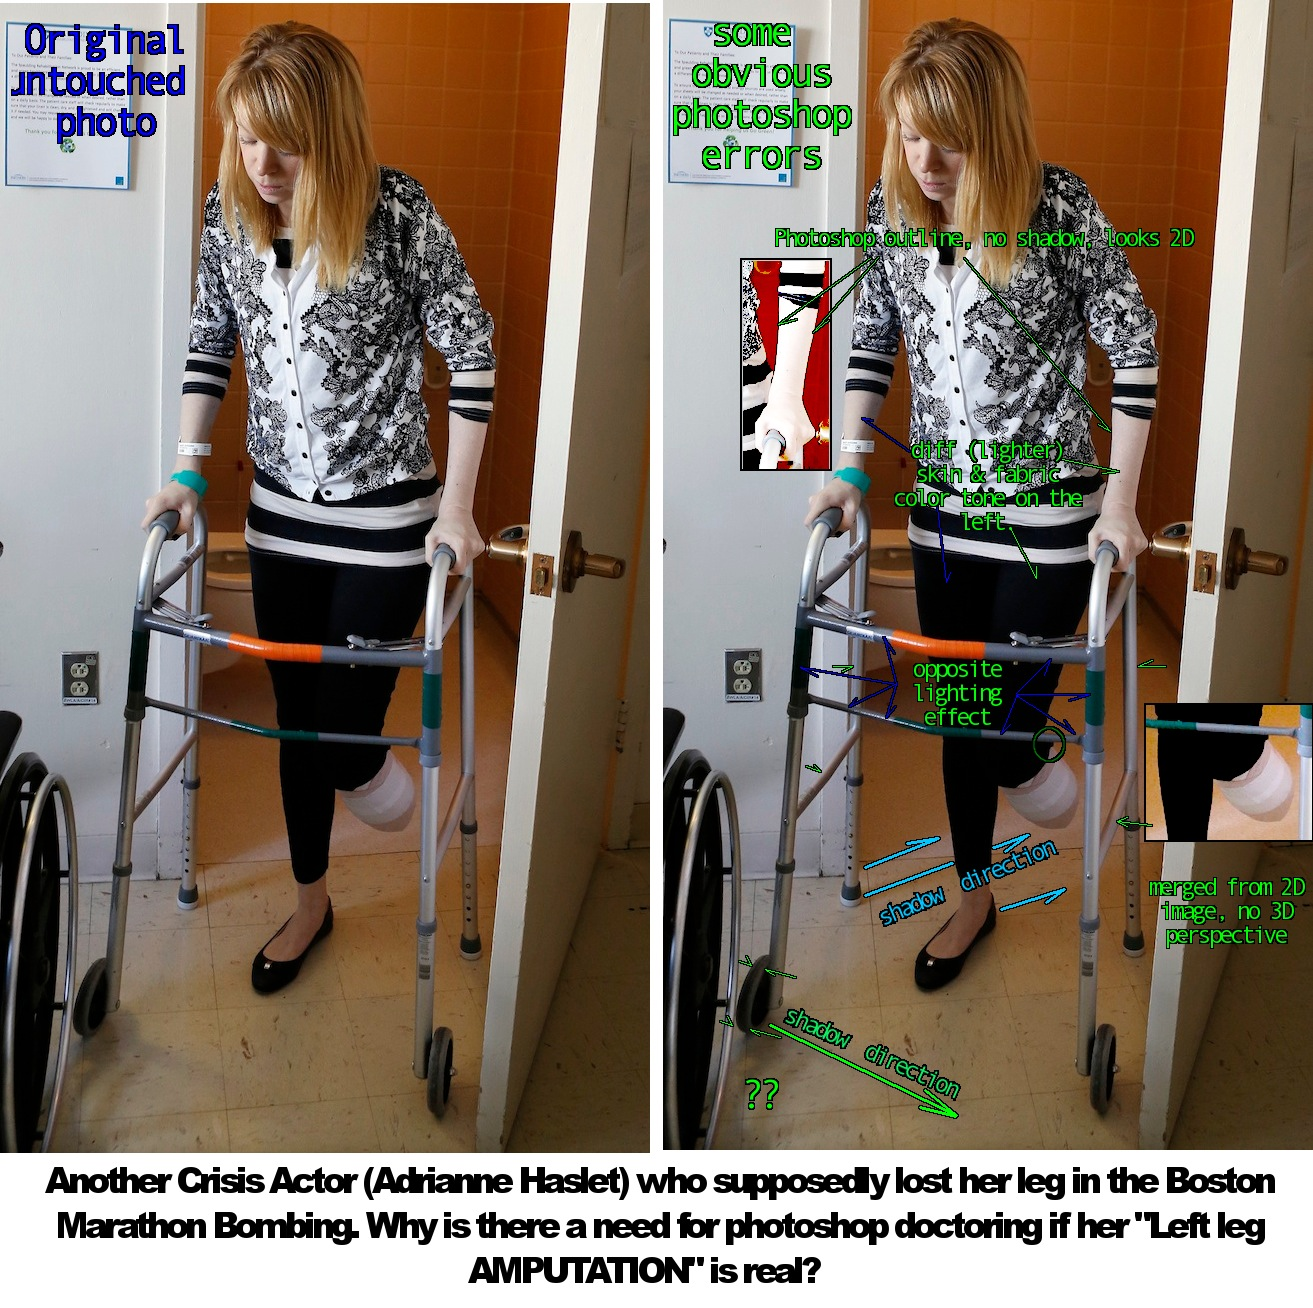 Leg Amputee Photos http://our-manmade-disasters.blogspot.com/2013/05/another-fake-leg-amputee-crisis-actor.html